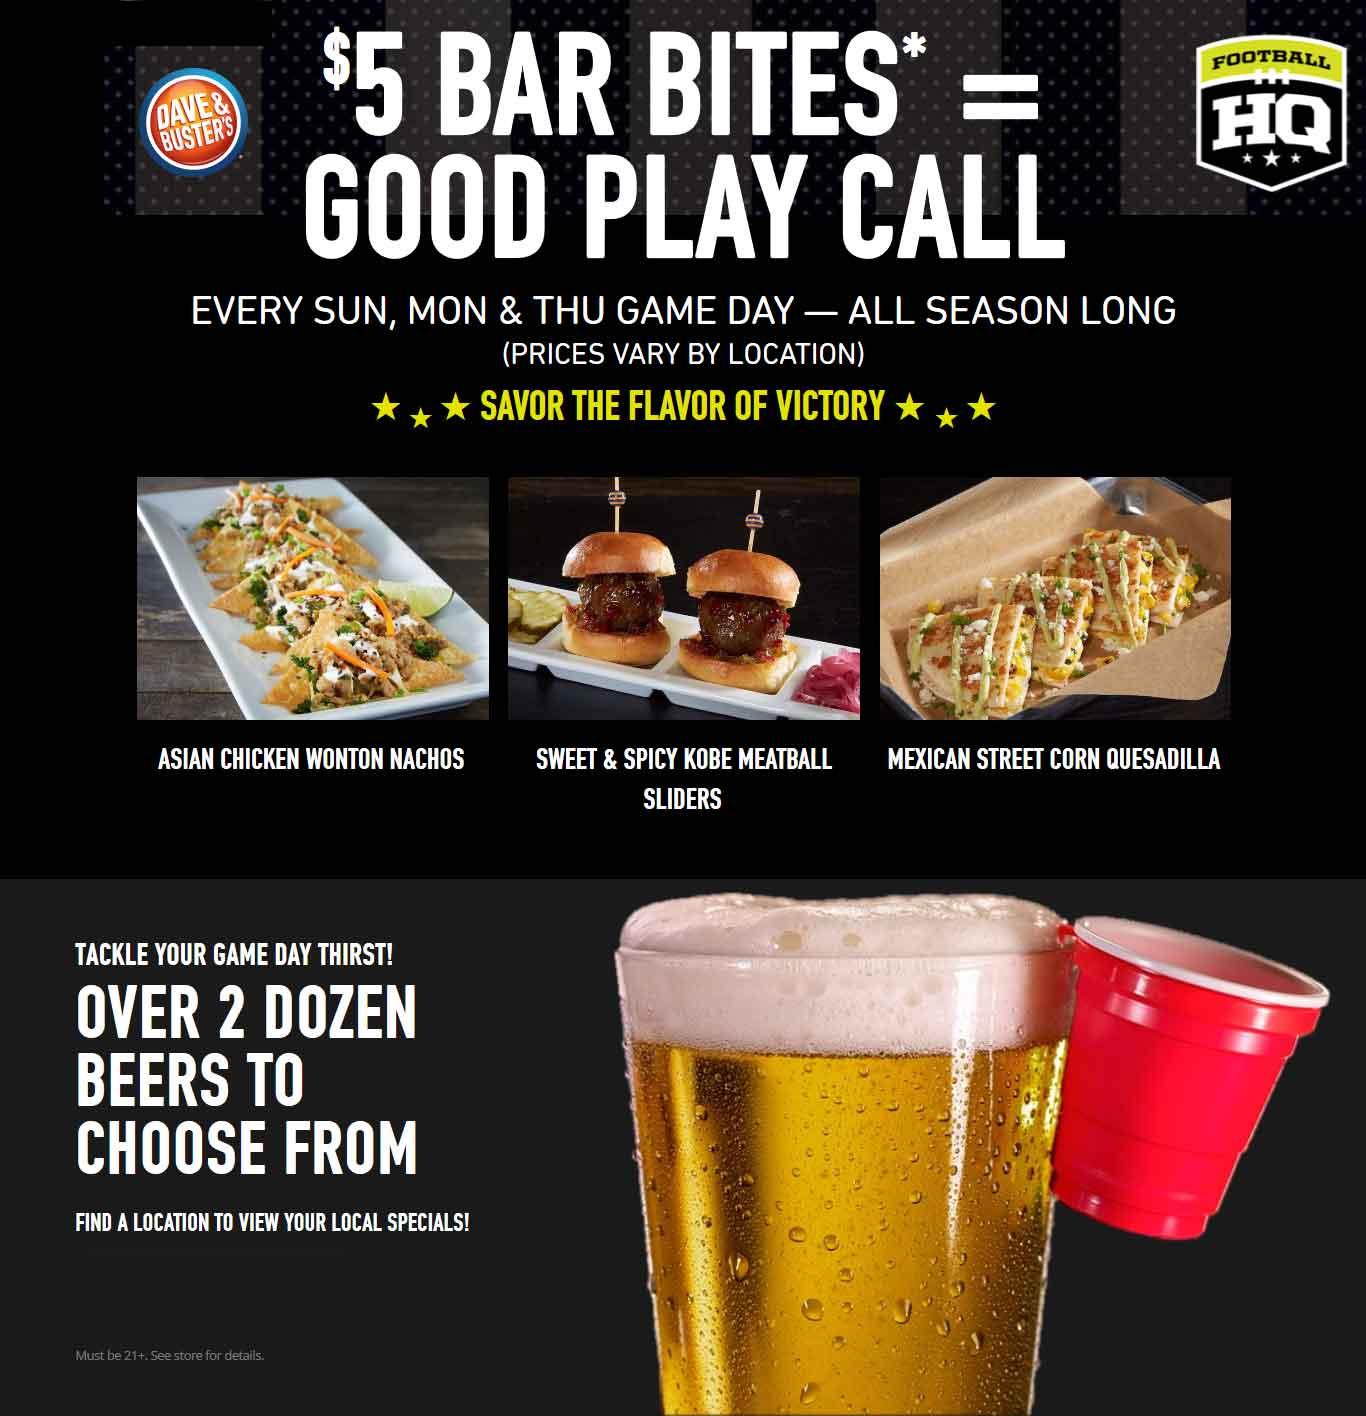 Dave & Busters Coupon May 2019 $5 bar bites at Dave & Busters gaming restaurants